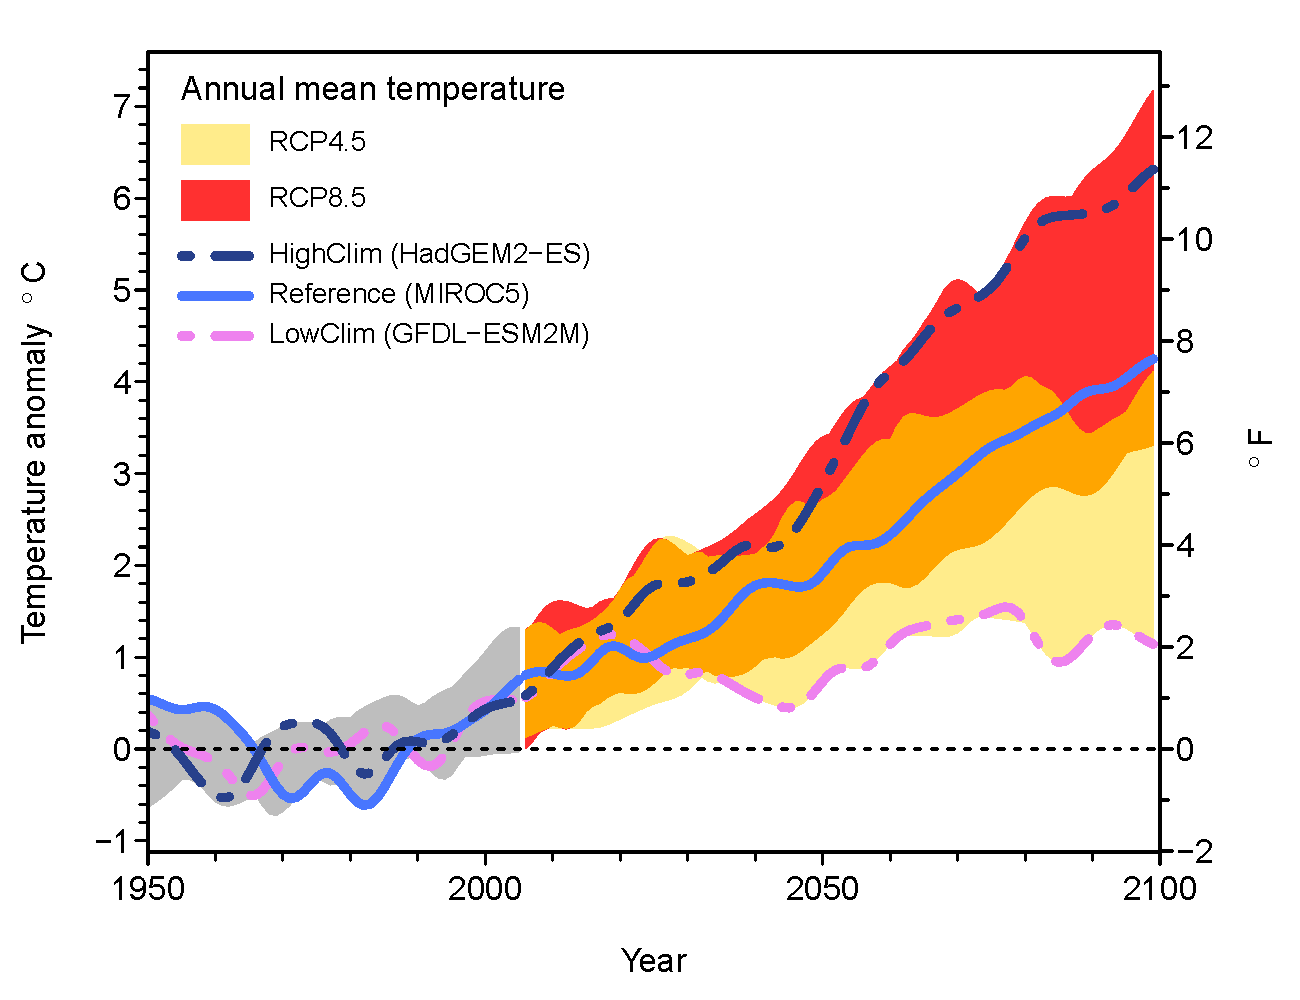 Differences in annual temperature for 1950-2100 from a historical baseline (mean of 1950-2005).